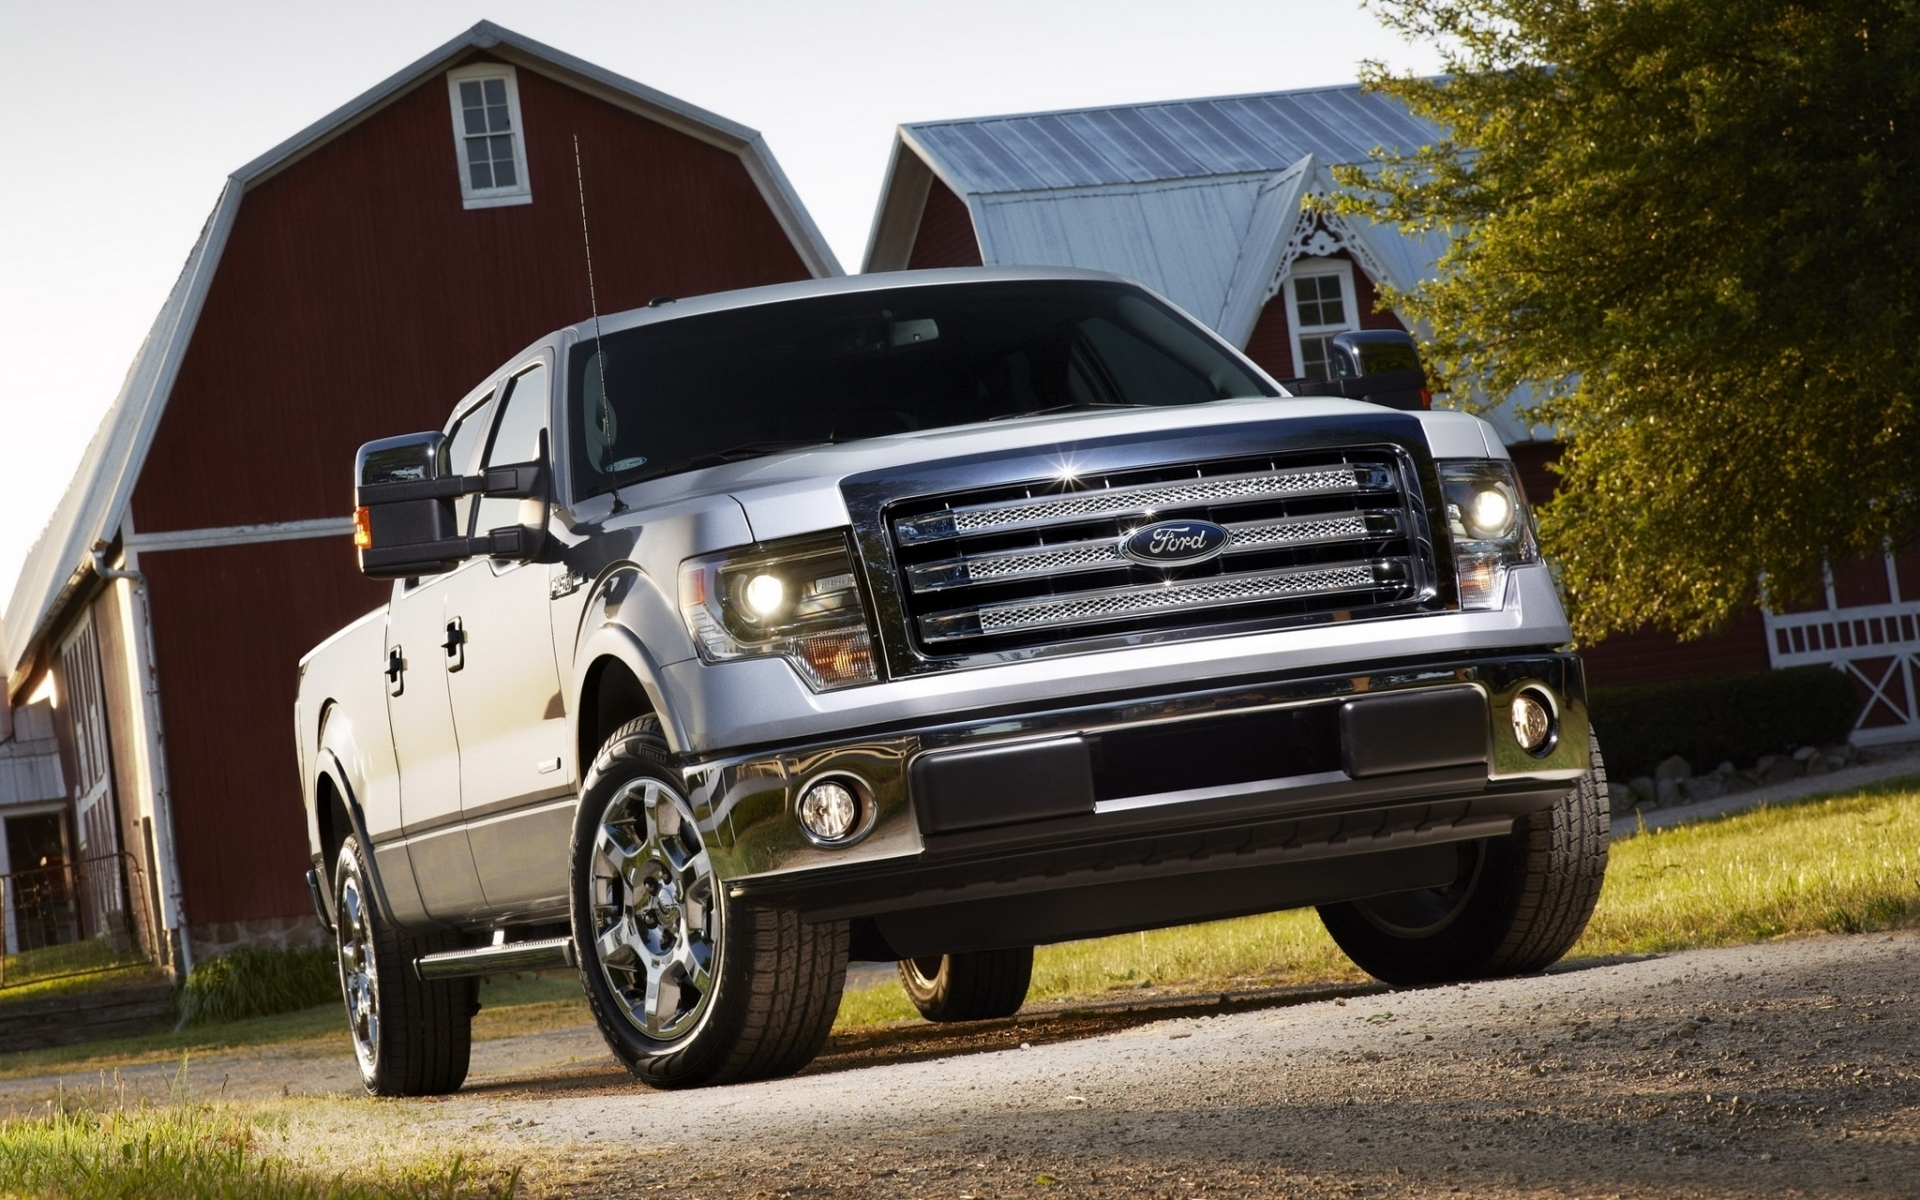 Ford F150 Full HD Wallpaper And Background Image